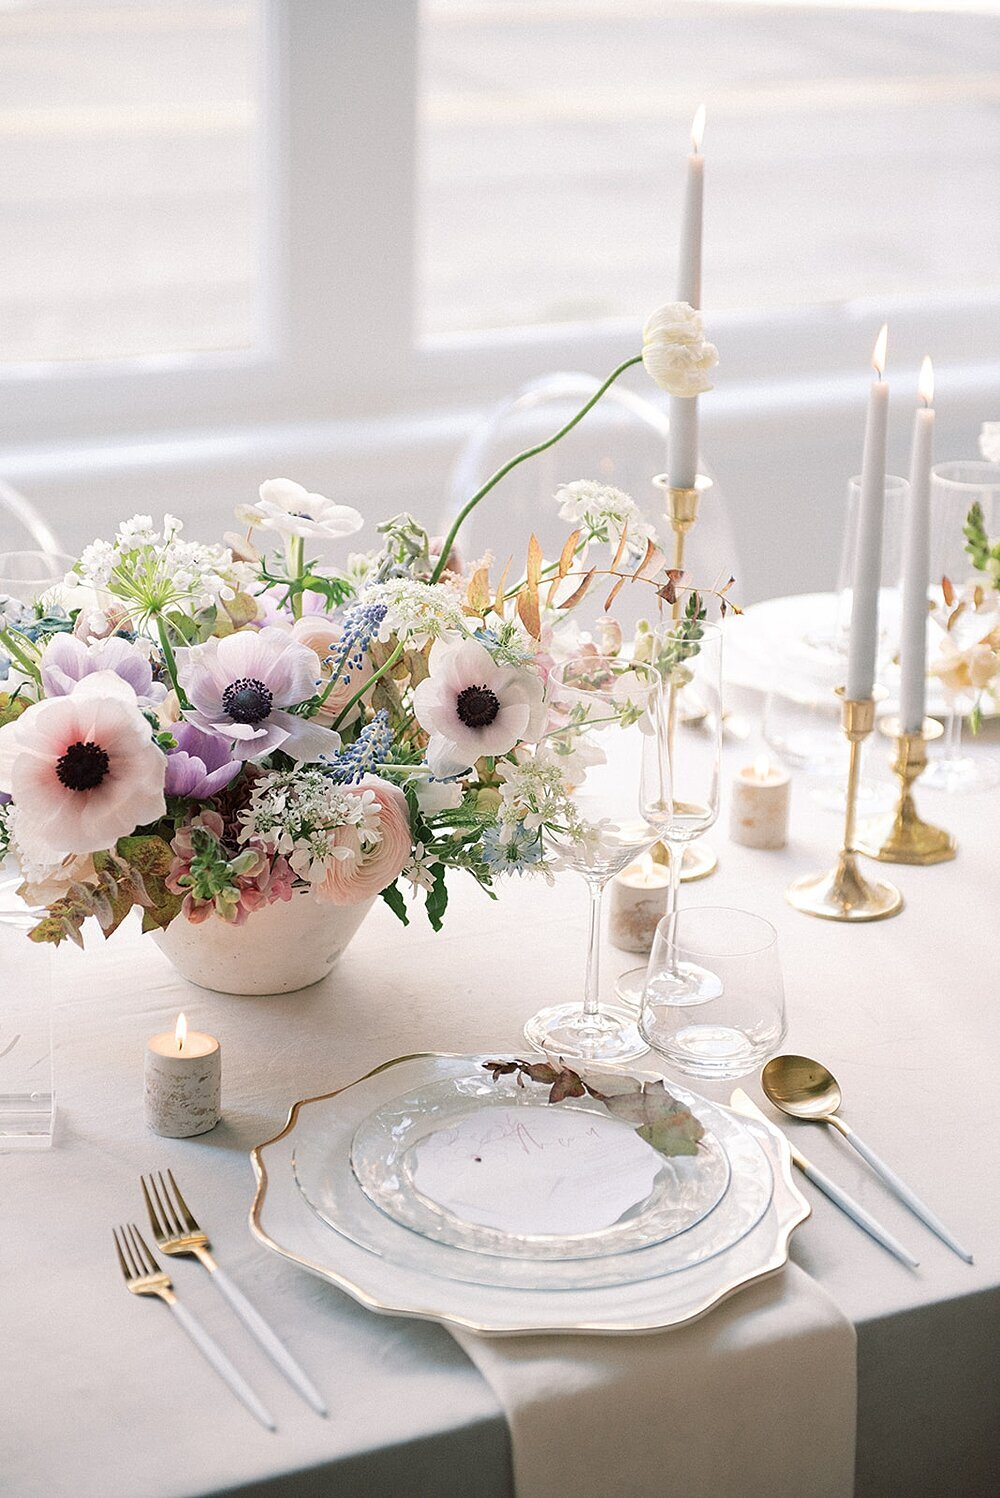 Modern-love-event-leigh-and-mitchell-modern-gold-and-white-place-settings